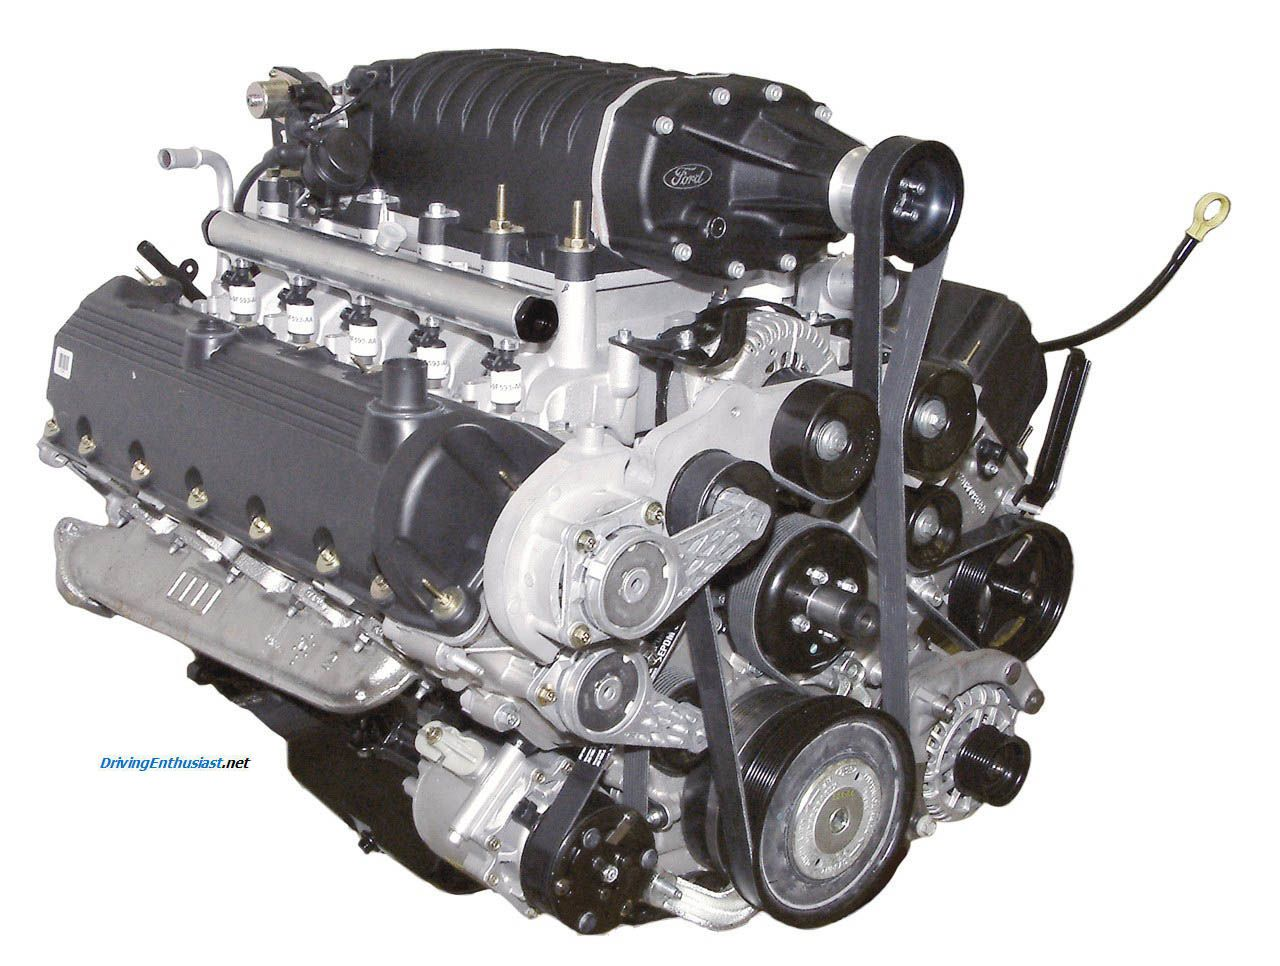 Ford 6 8 Sohc V 10 Production Version Designed For Hydrogen Fuel This Engine Is Found In Several Industrial Uses Inclu Engineering Combustion Engine Car Ford